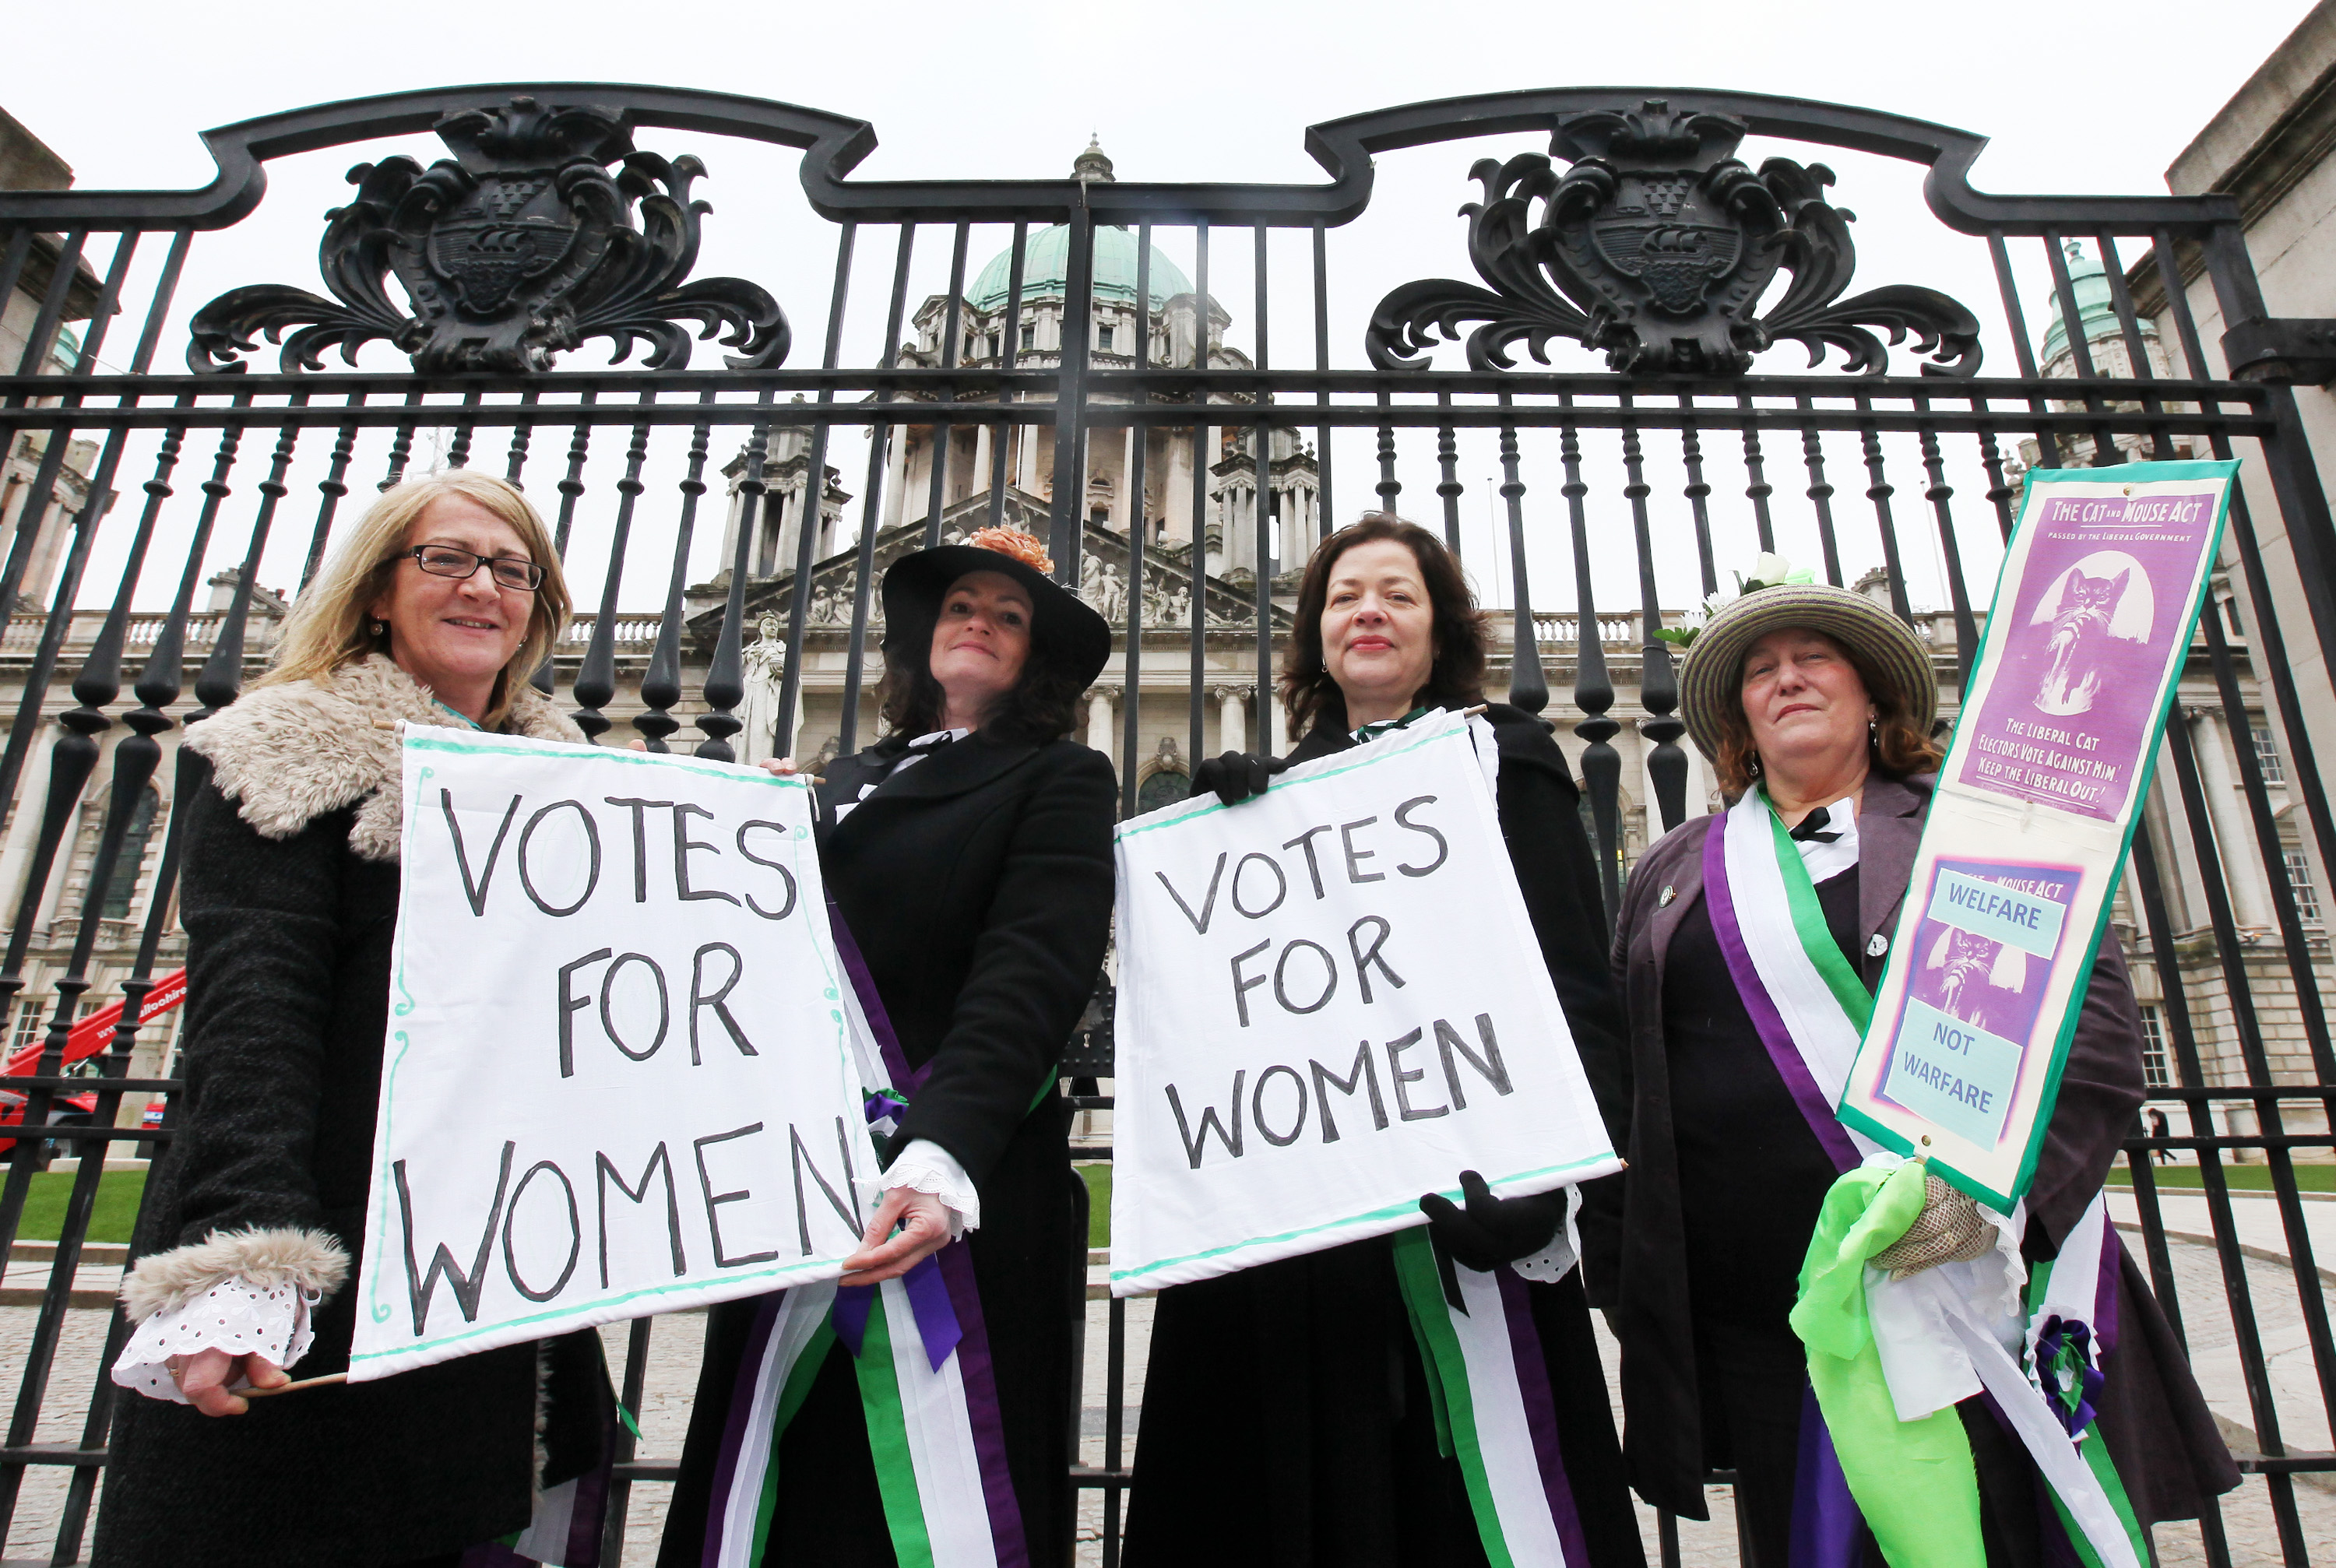 International Women's Day celebrates centenary of Suffragette struggle for rights